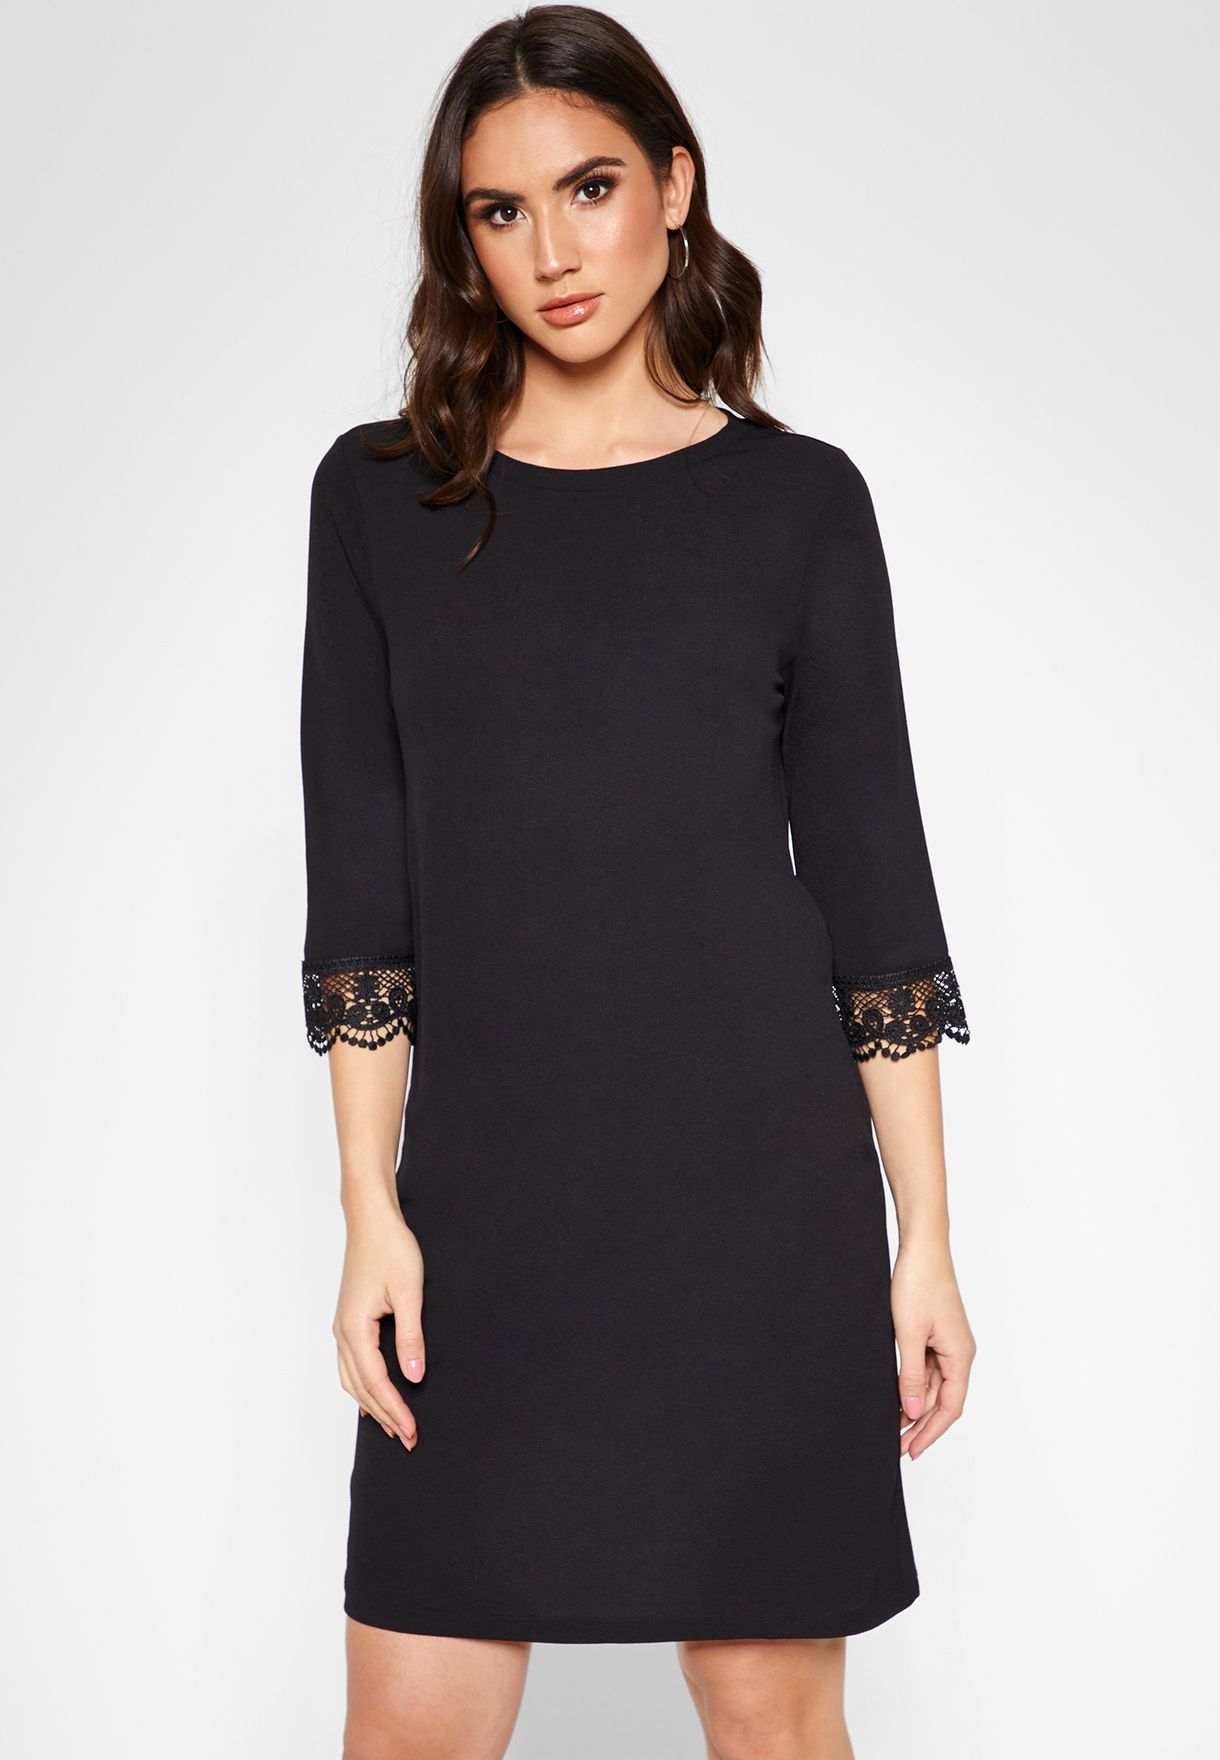 Lace Hem Sleeve Dress